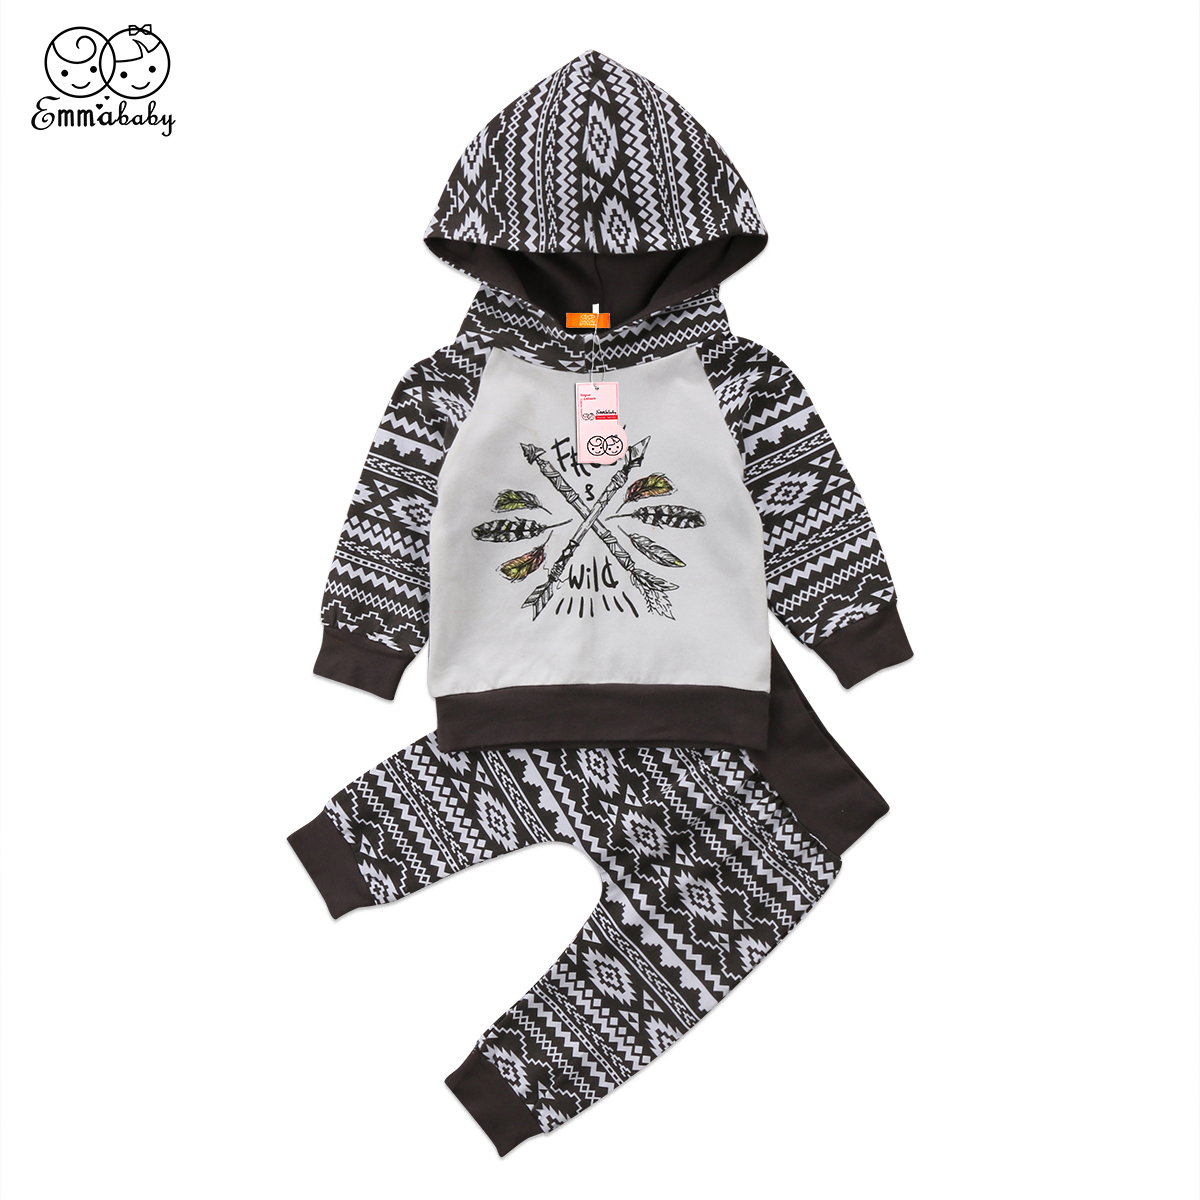 2018 new casual kid outfit set Newborn Cute Baby Boys long sleeve Cotton Hooded Shirt Tops+Pants print Outfits 2Pcs Set Clothes